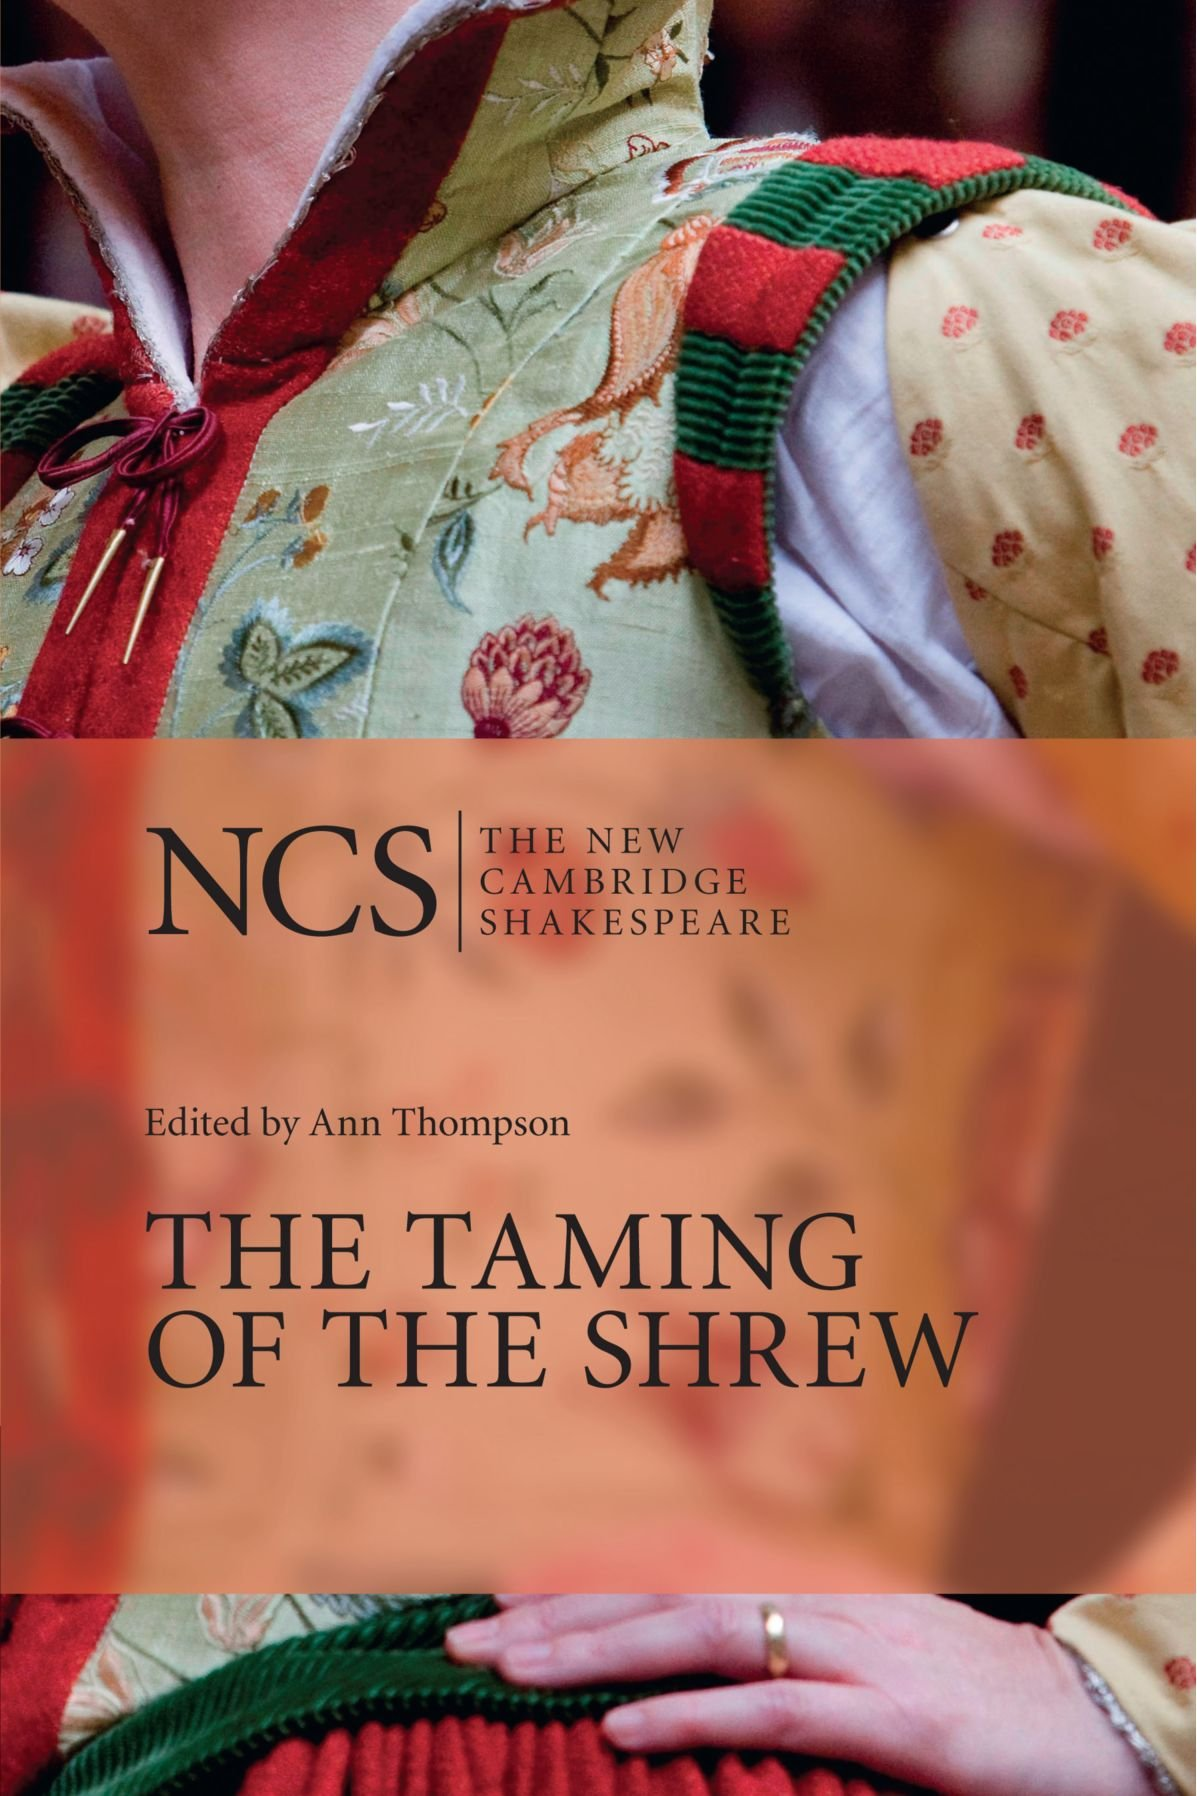 The Taming of the Shrew (The New Cambridge Shakespeare) free download